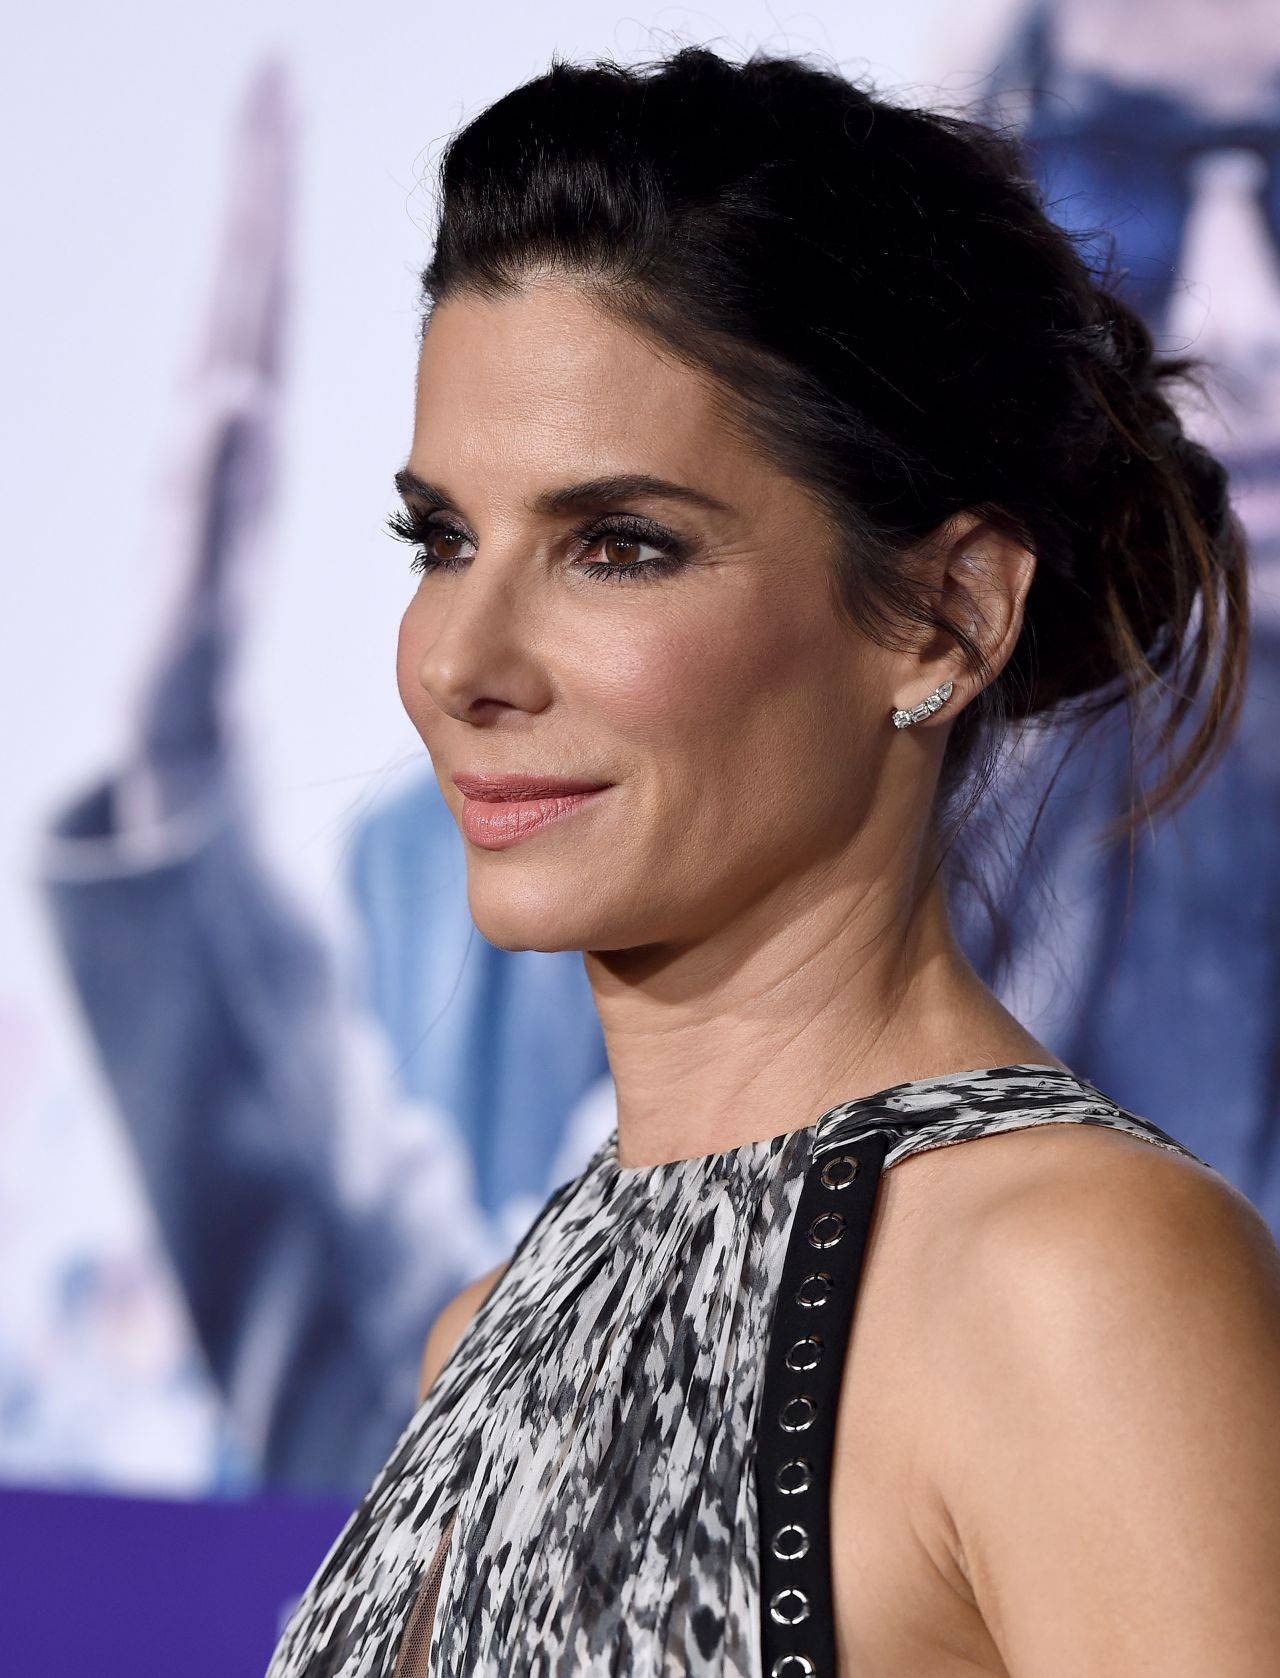 Sandra Bullock Our Brand Is Crisis Premiere In Hollywood